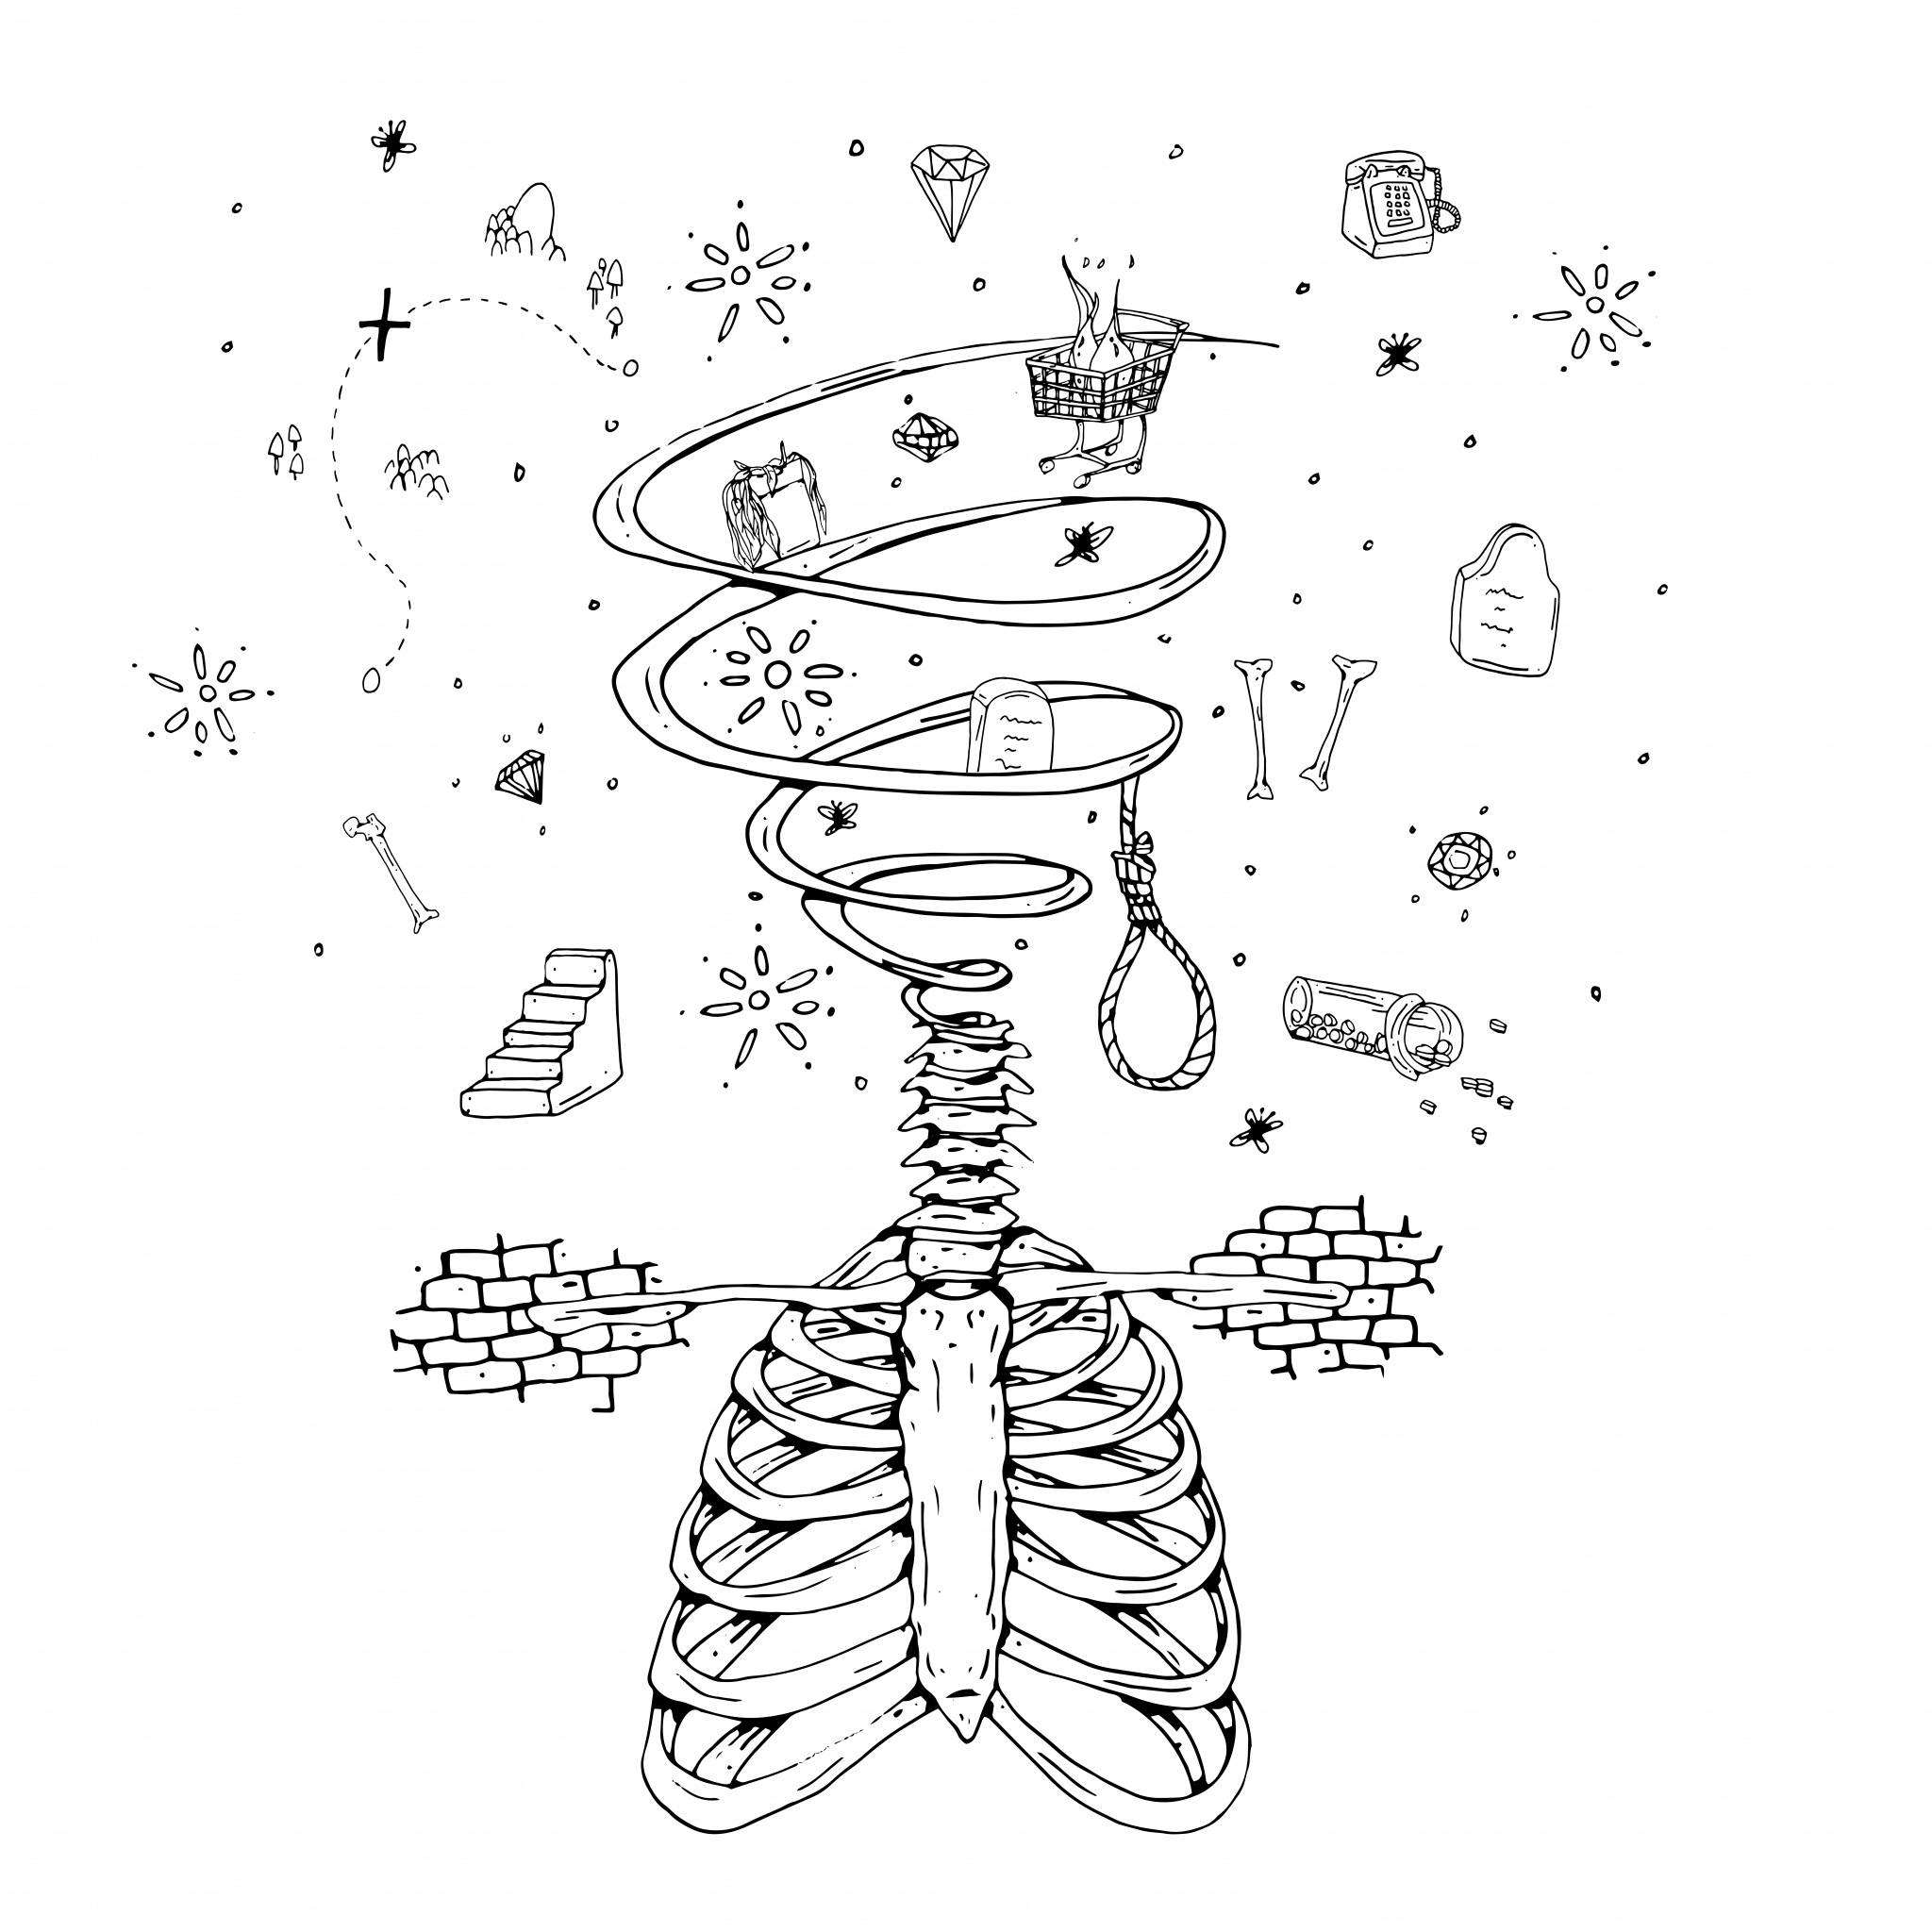 "Cover for Myles Bullen and Mosart 212 EP ""Looking For a Body"" is a hand drawn collage centering on a human skeleton torso with an arrow through it while numerous life influence icons like gravestones, prescription drugs, and a noose hover over it."